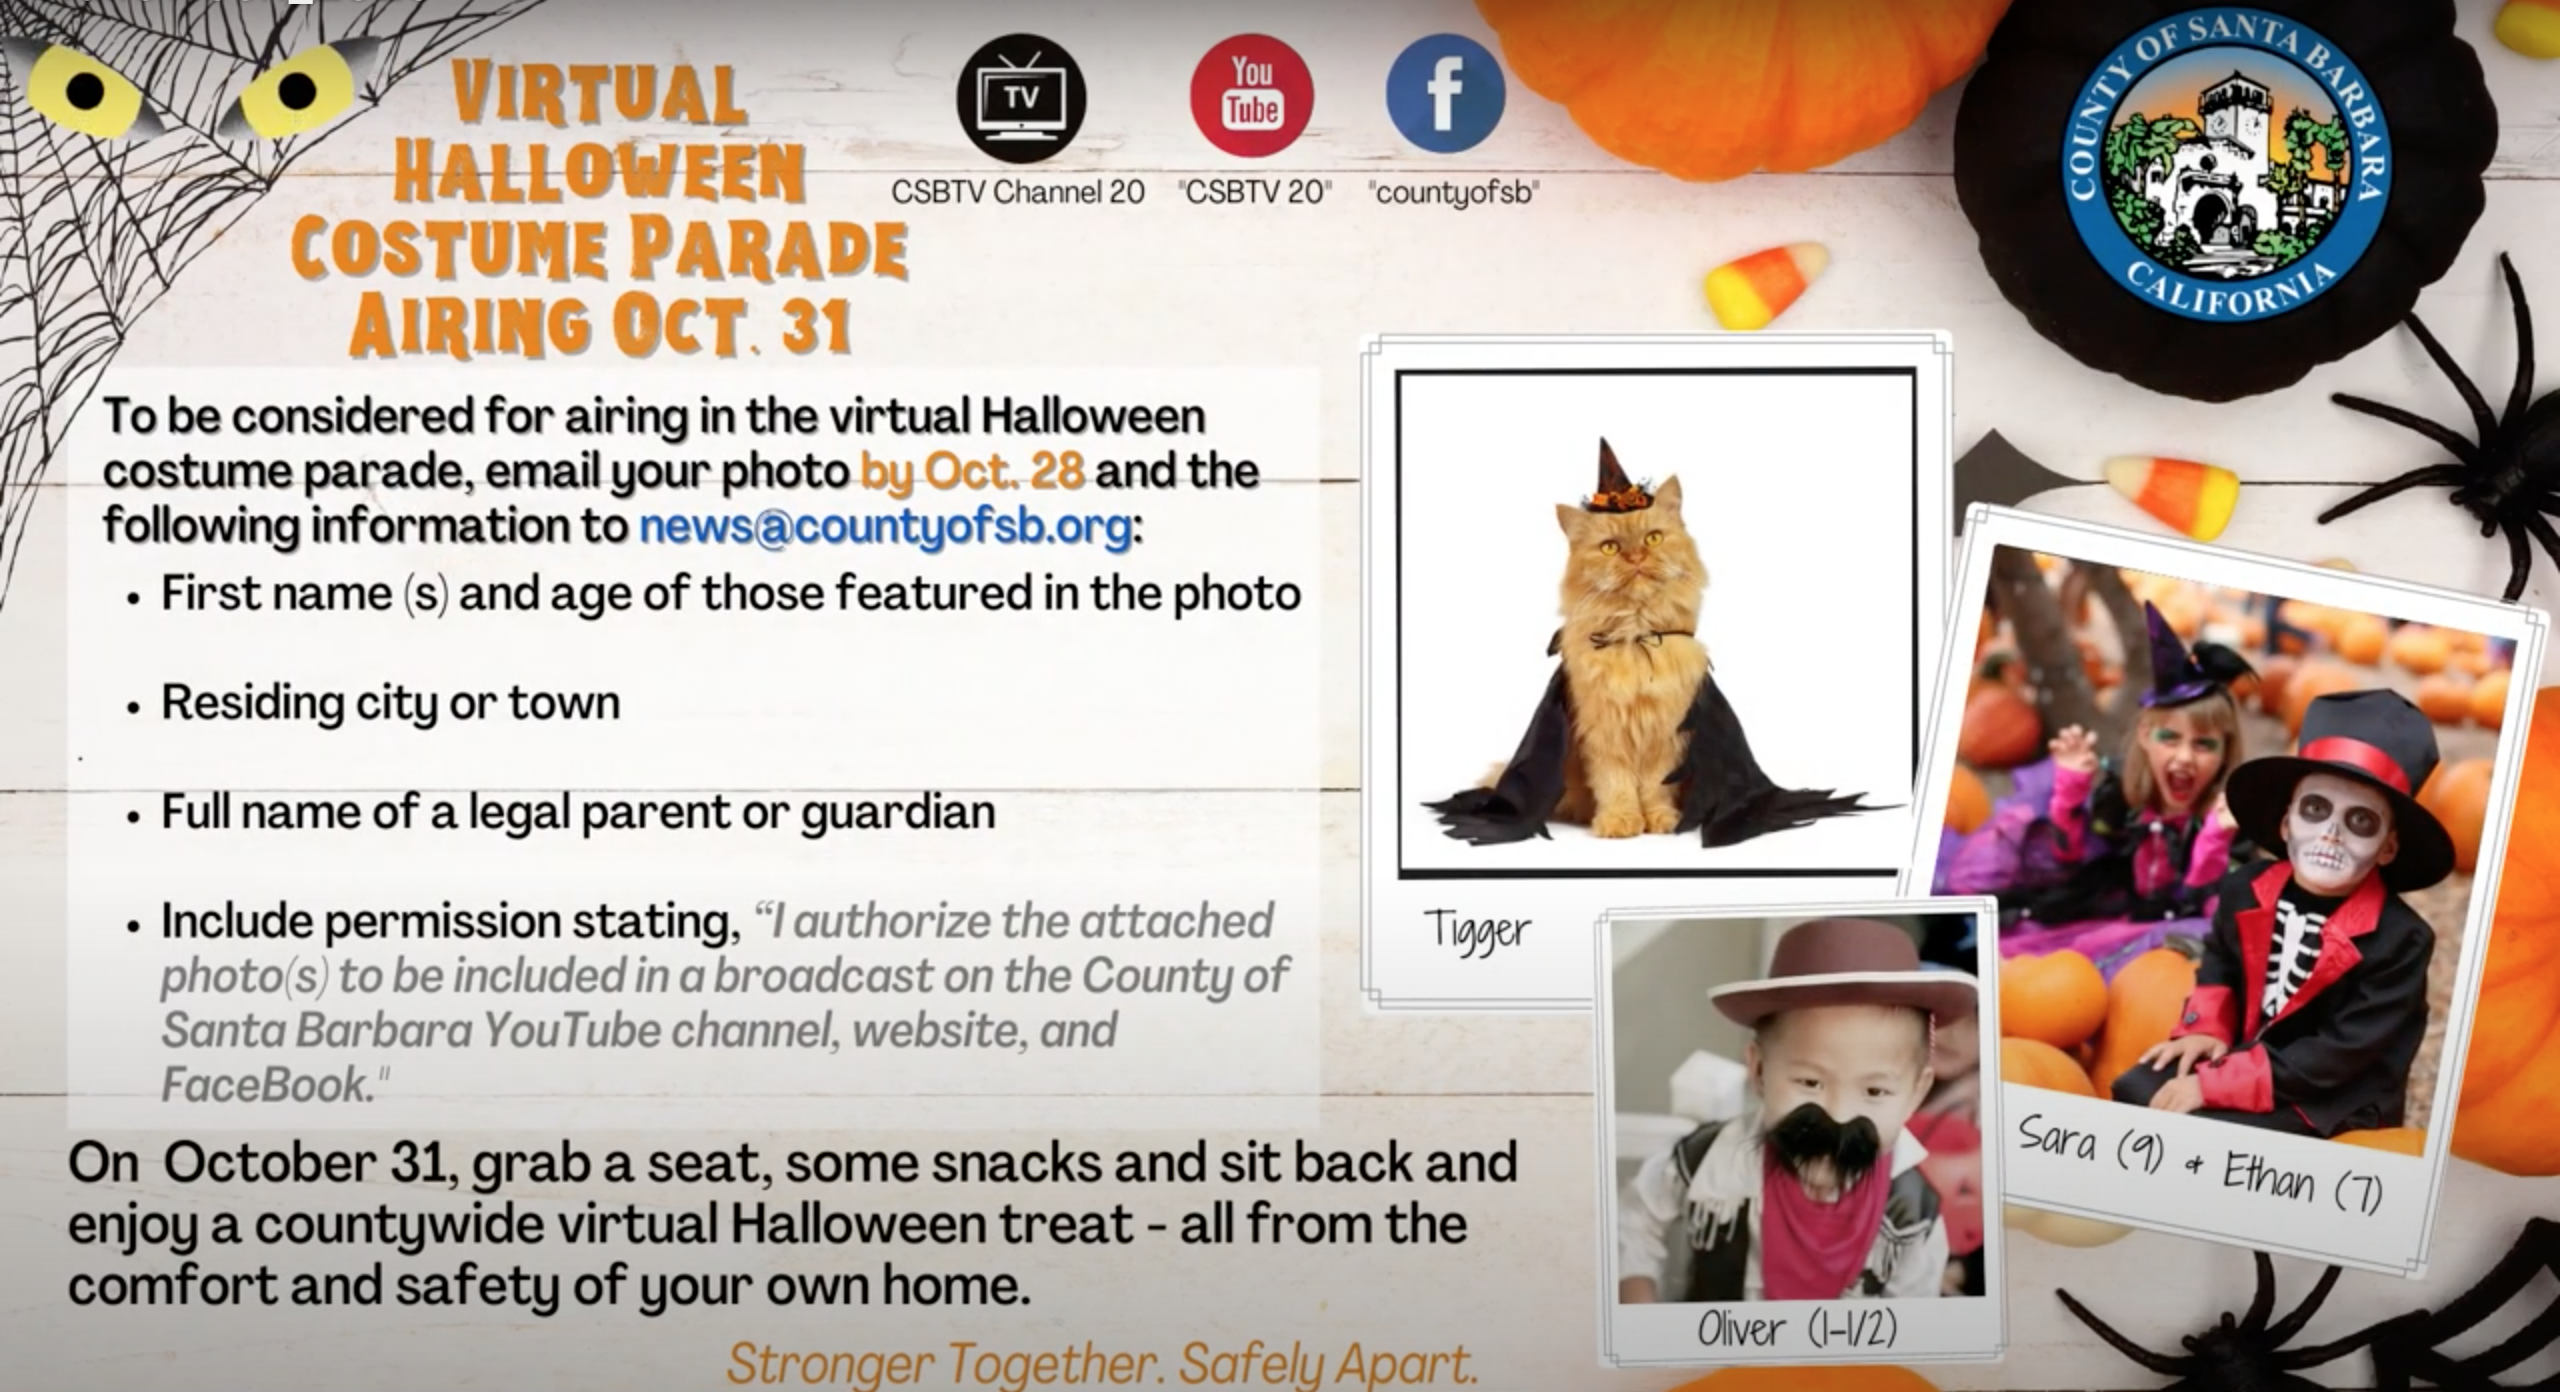 Halloween Costumes For October 2020 That All Ages Will Get Santa Barbara County to hold virtual Halloween costume parade